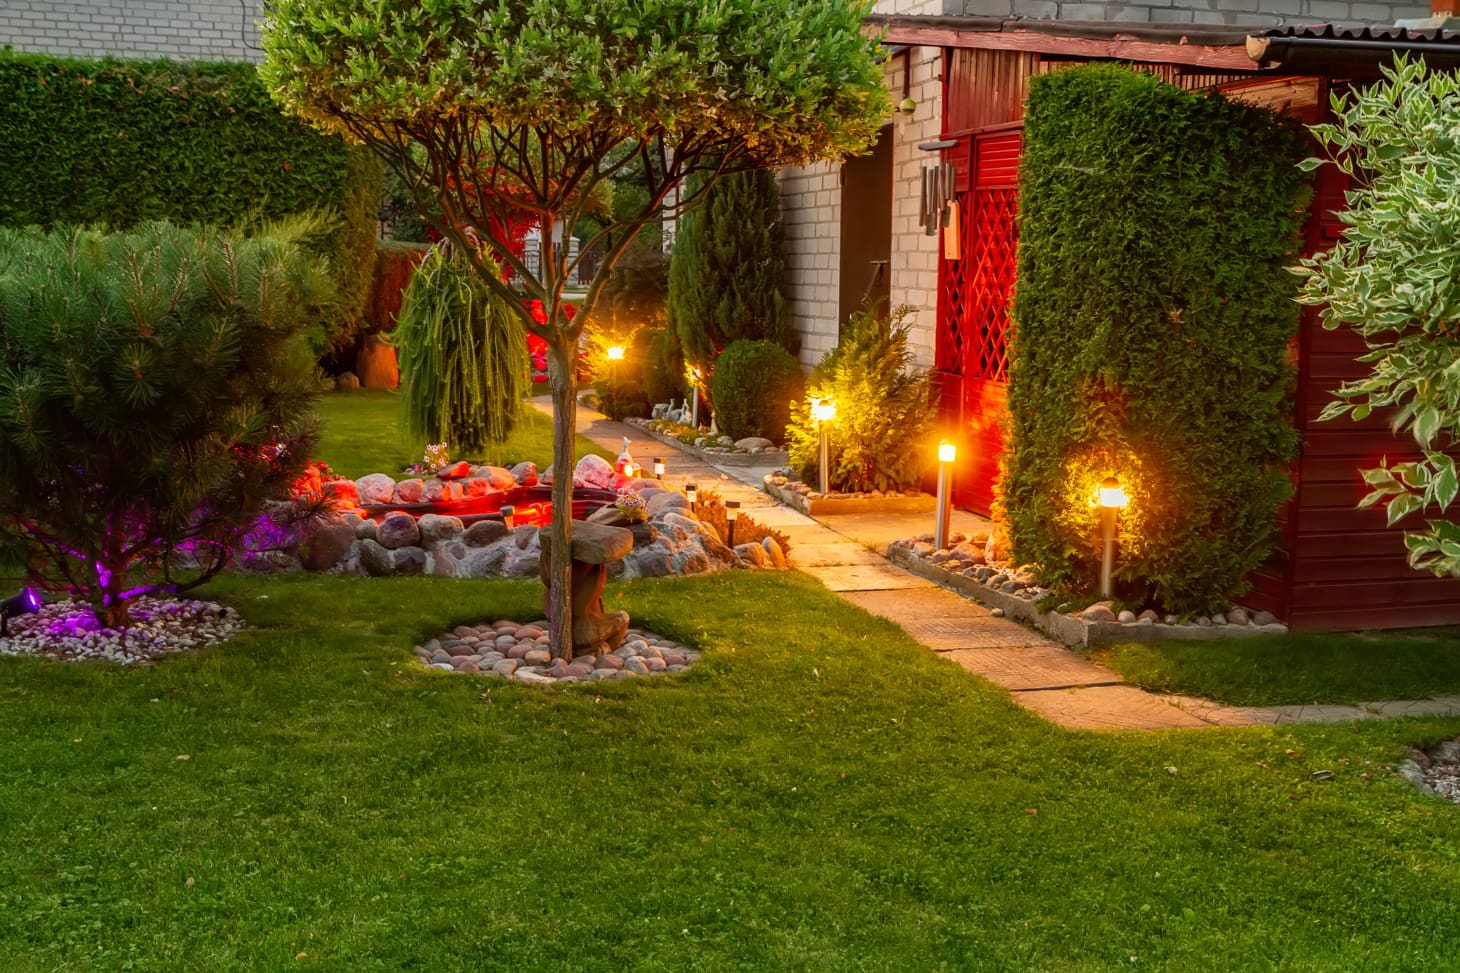 6 Outdoor Space Revamps That'll Help Sell Your House, According to Home Experts